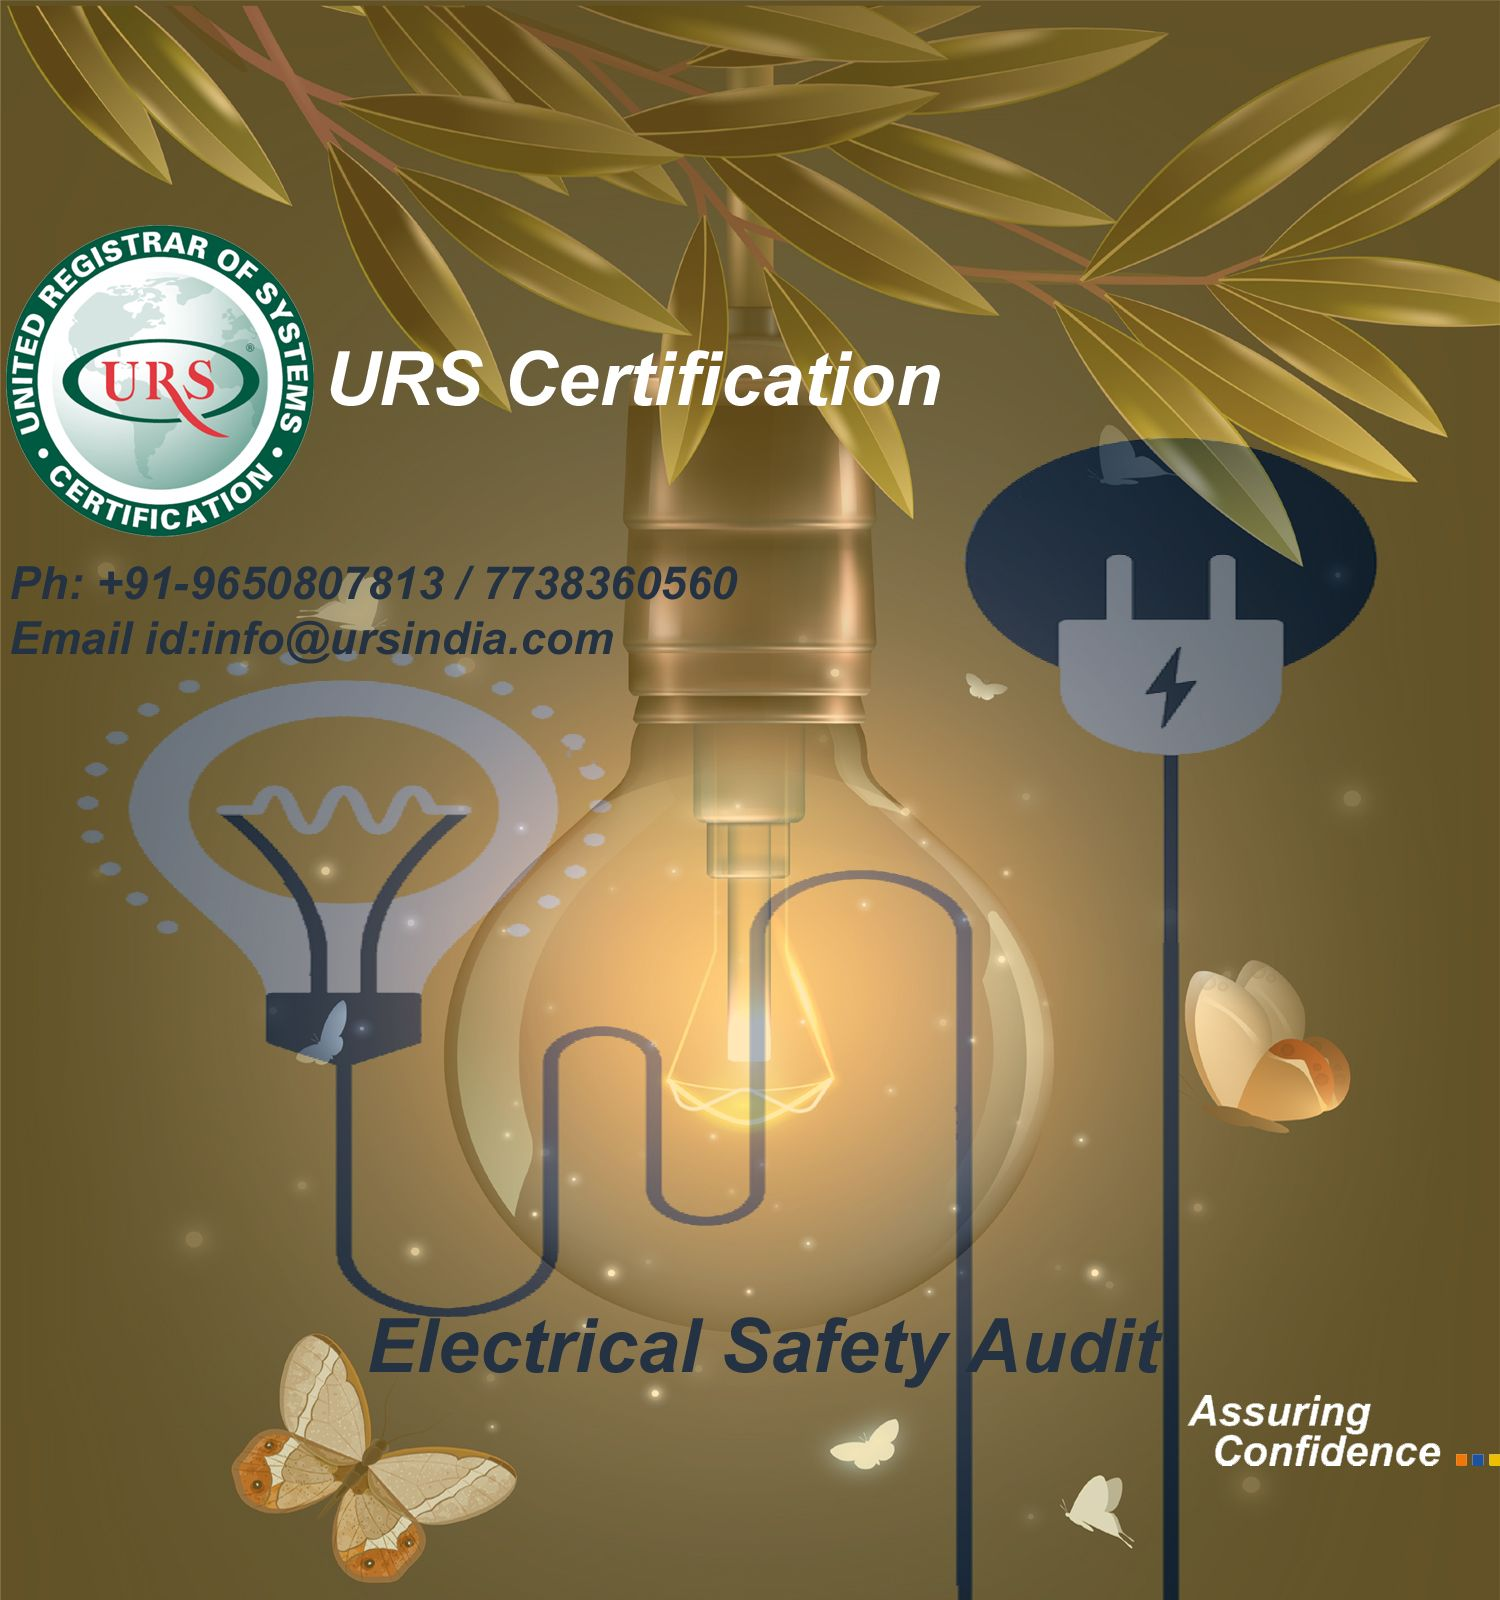 Electrical safety audit helps in the Verification of